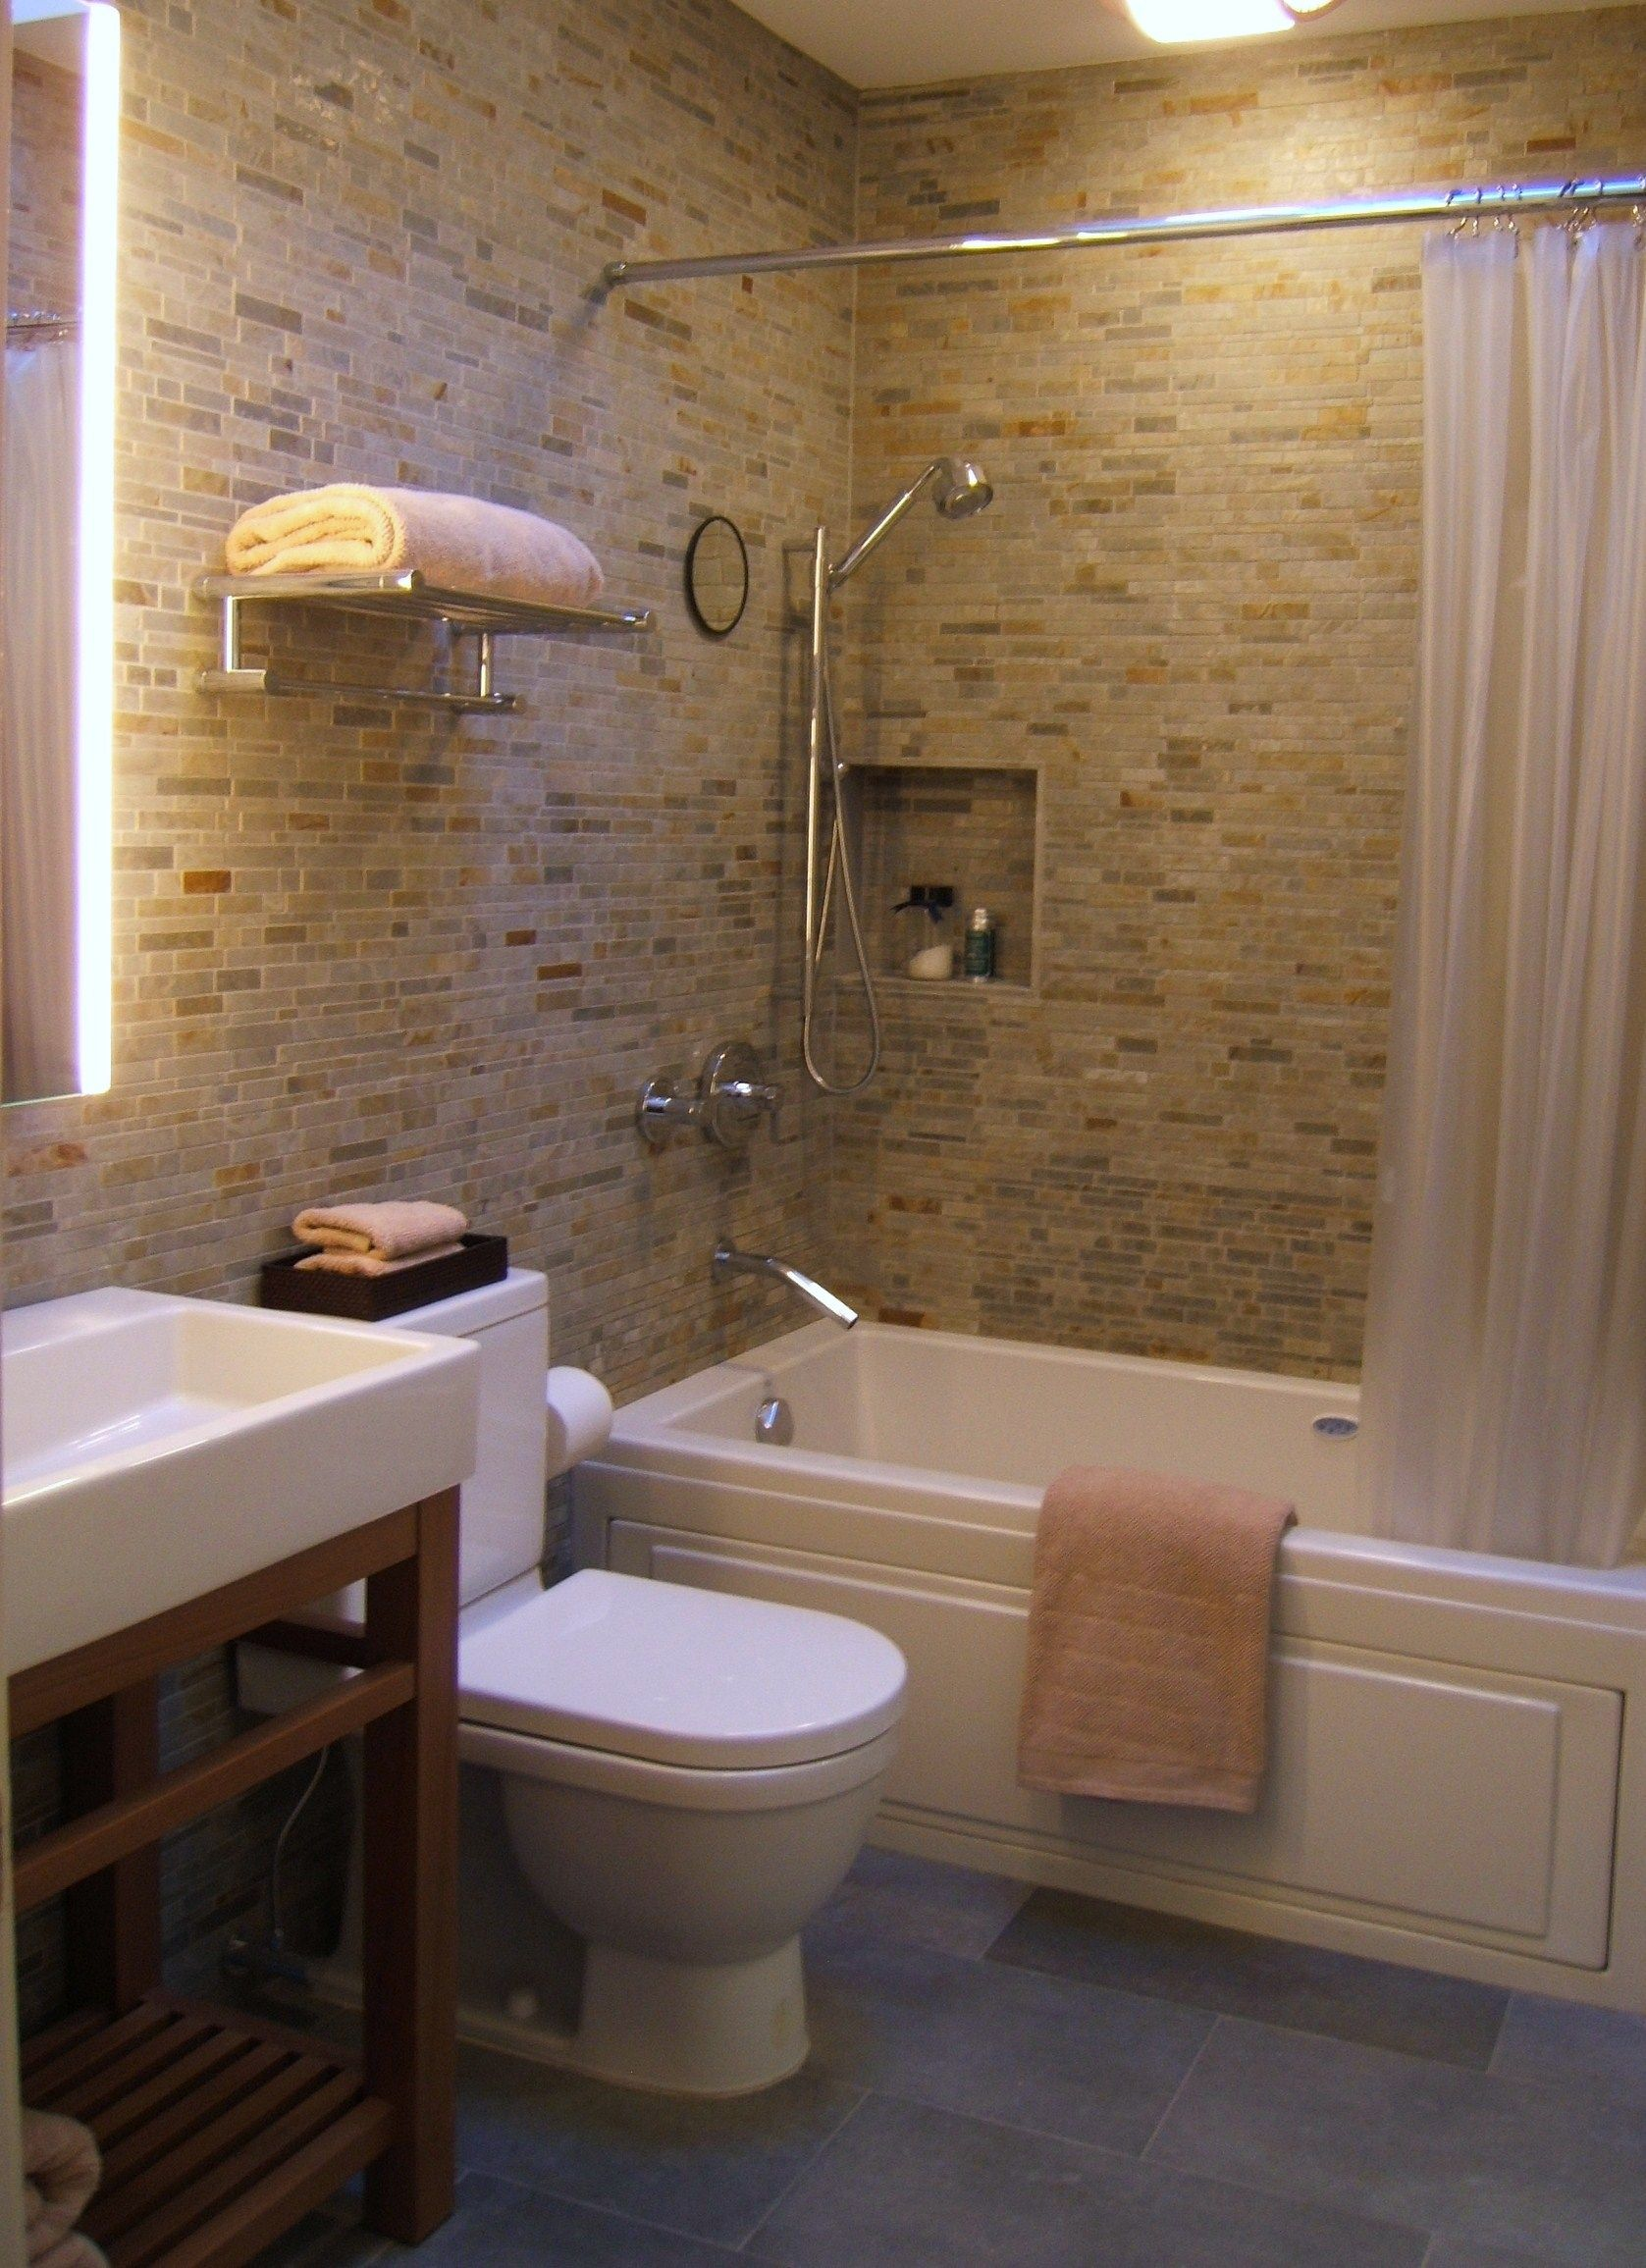 Small bathroom designs south africa small bath Small bathroom design ideas with shower